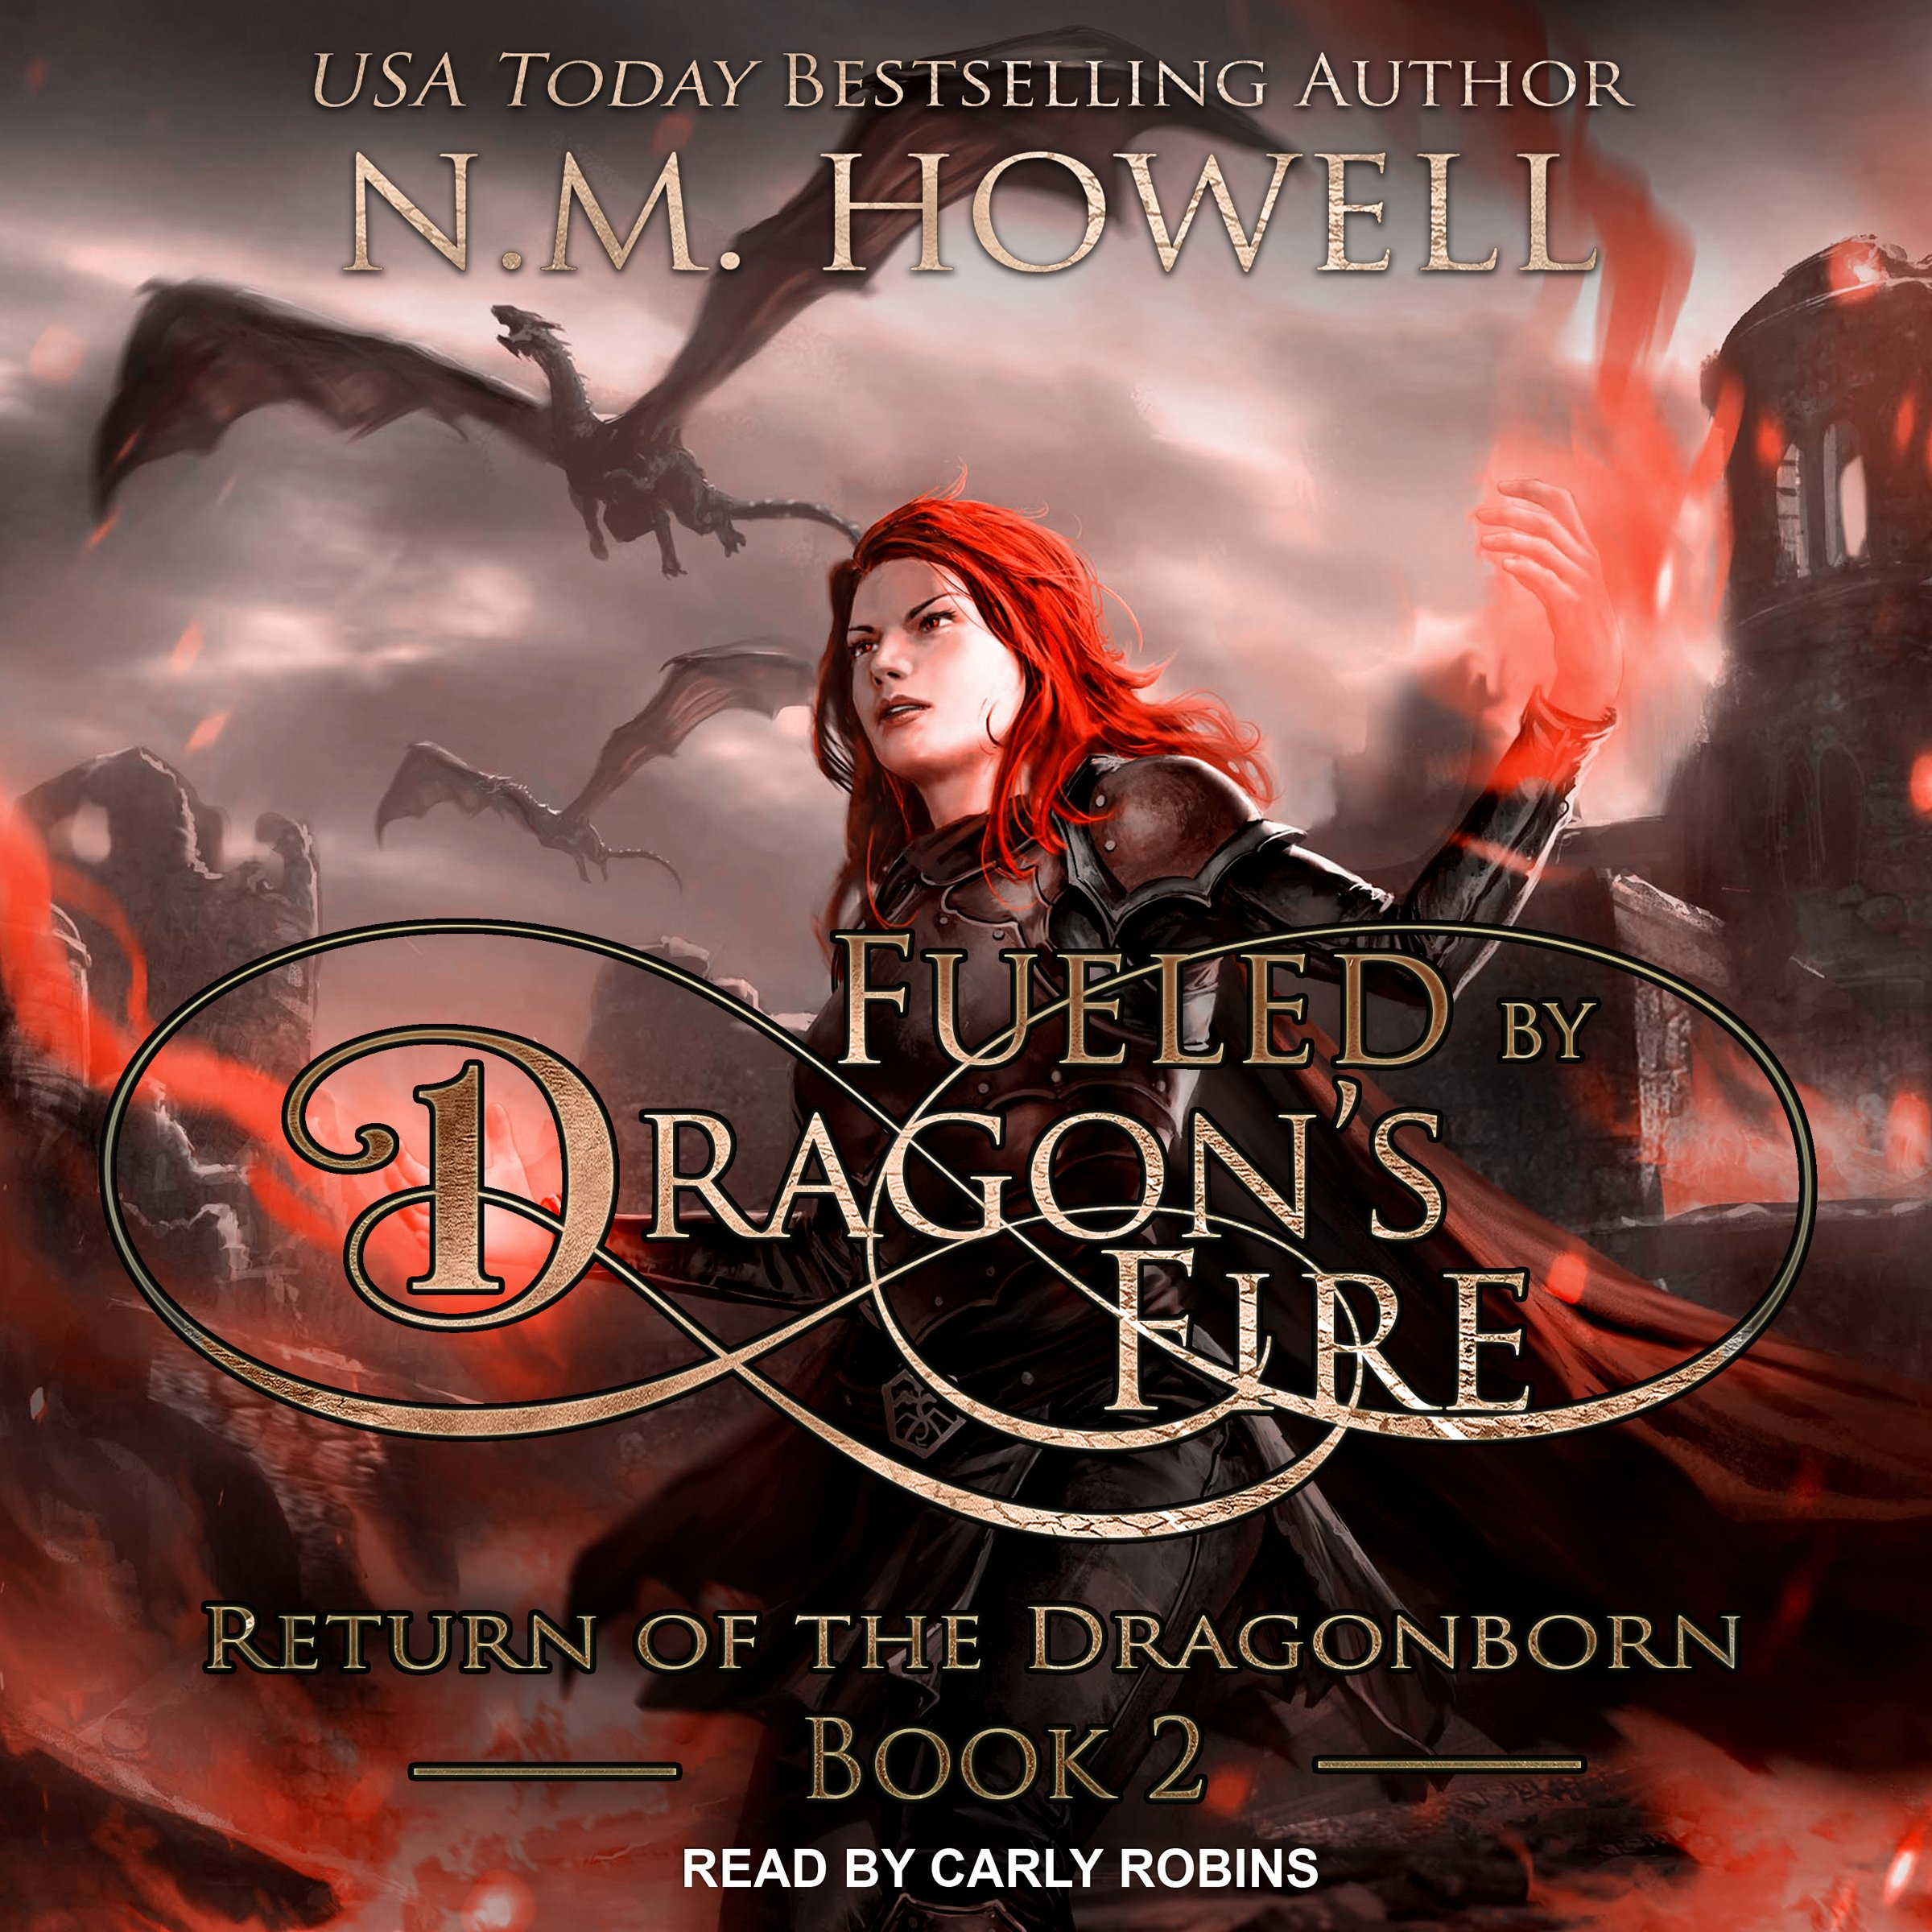 Fueled by Dragon's Fire: Return of the Dragonborn, Book 2